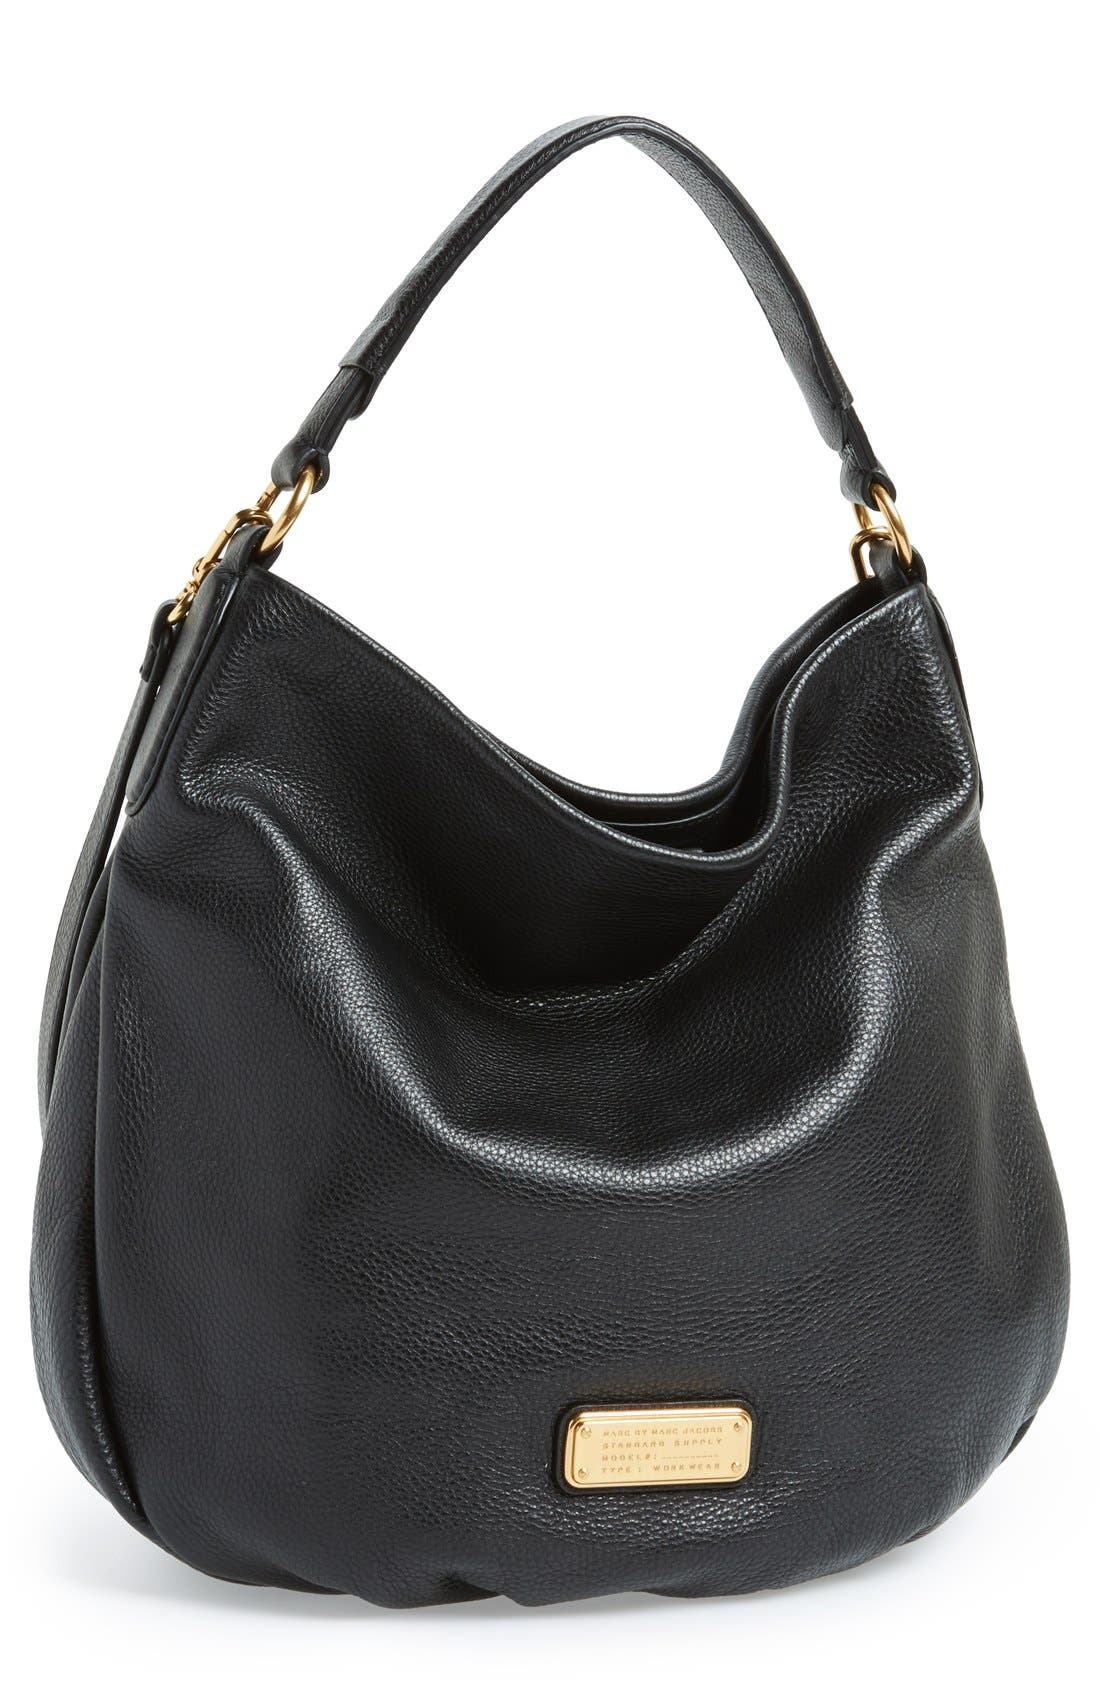 MARC BY MARC JACOBS 'New Q Hillier' Hobo,                             Main thumbnail 1, color,                             001